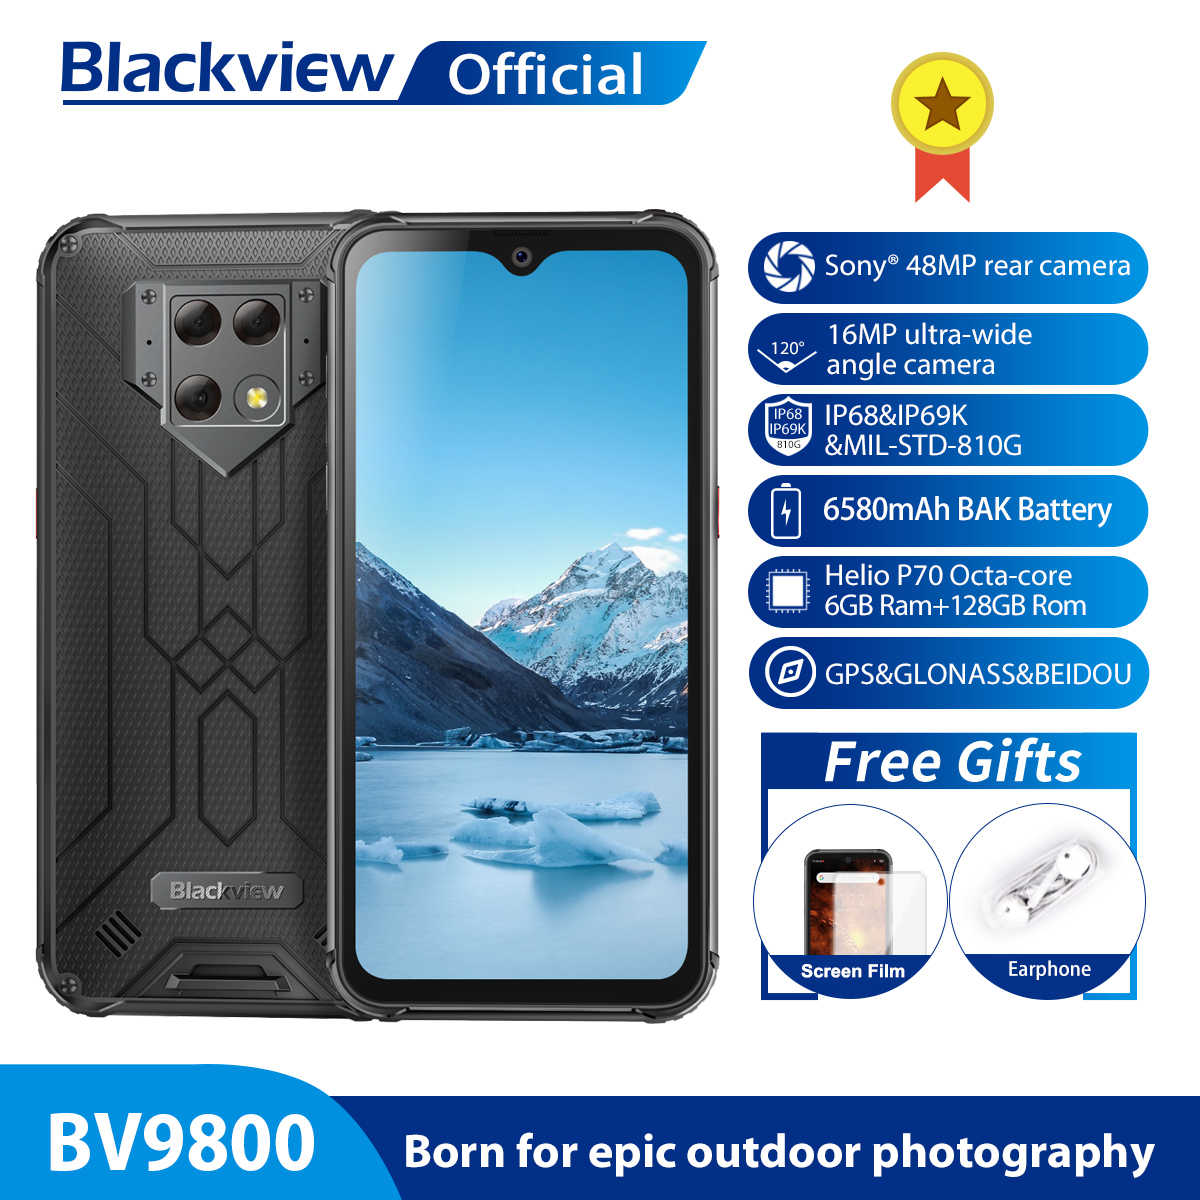 "Blackview a BV9800 Helio P70 Android 9,0 6GB + 128GB Smartphone 48MP cámara trasera IP68 6580mAh impermeable 6,3 ""FHD teléfono móvil"